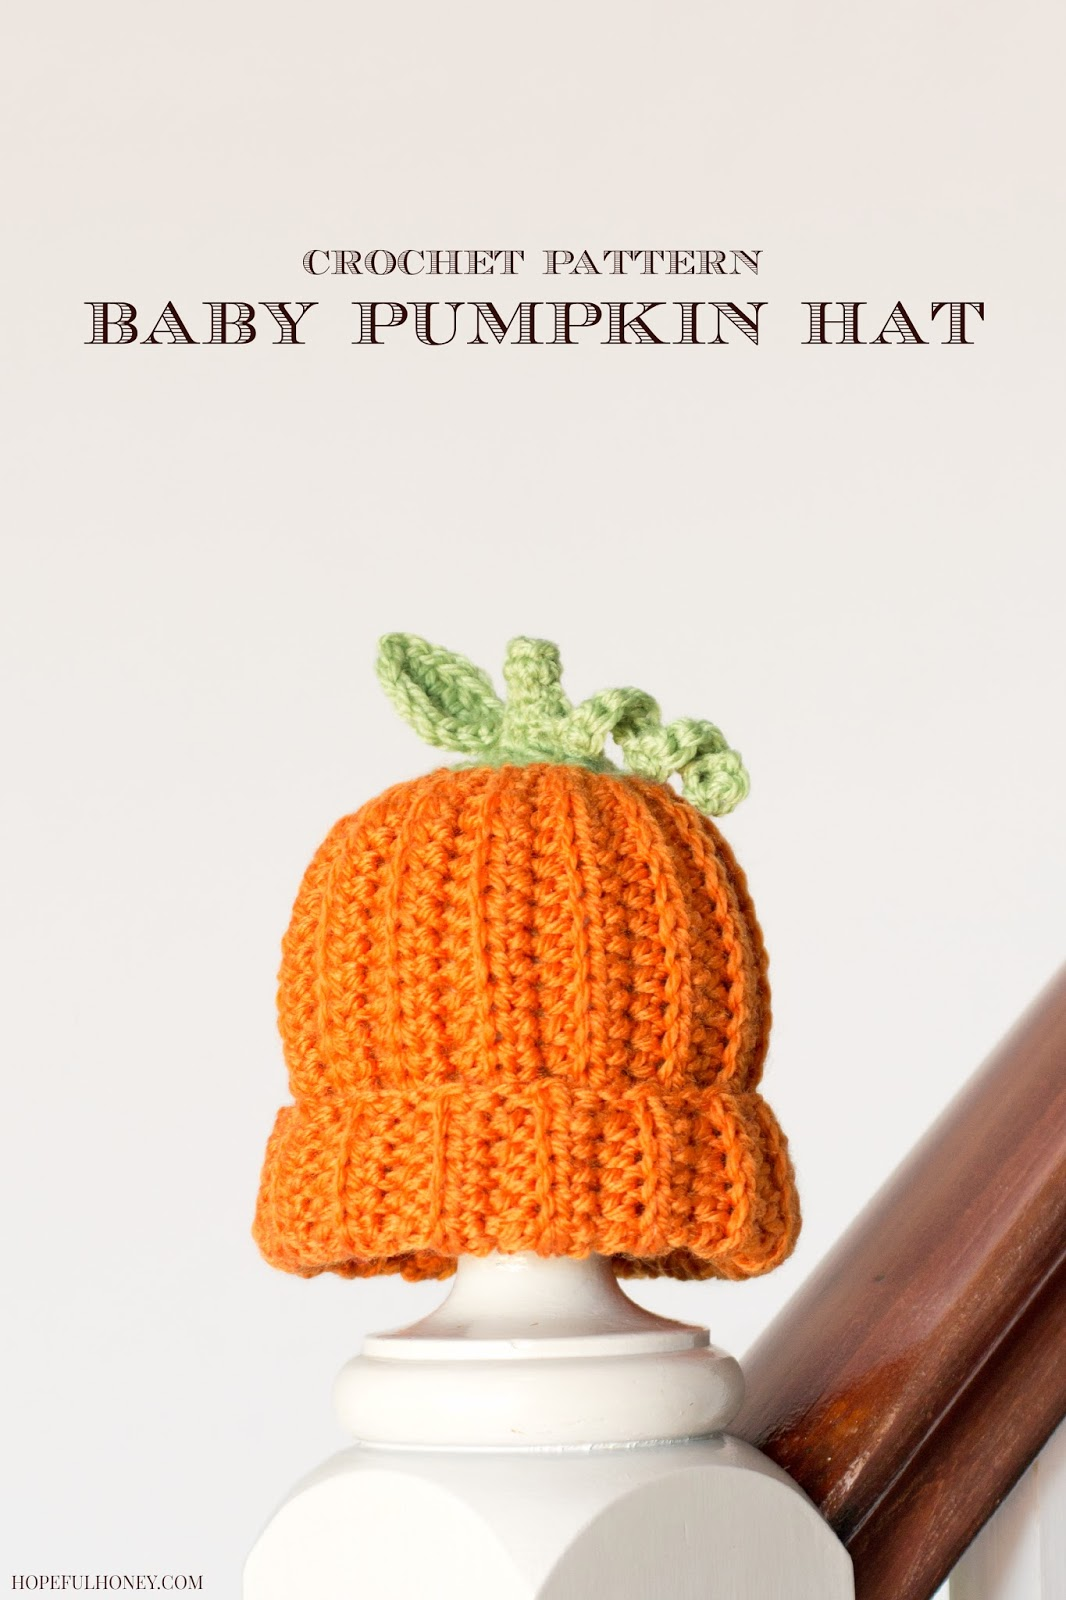 Free Newborn Pumpkin Hat Crochet Pattern : Hopeful Honey Craft, Crochet, Create: Newborn Pumpkin ...